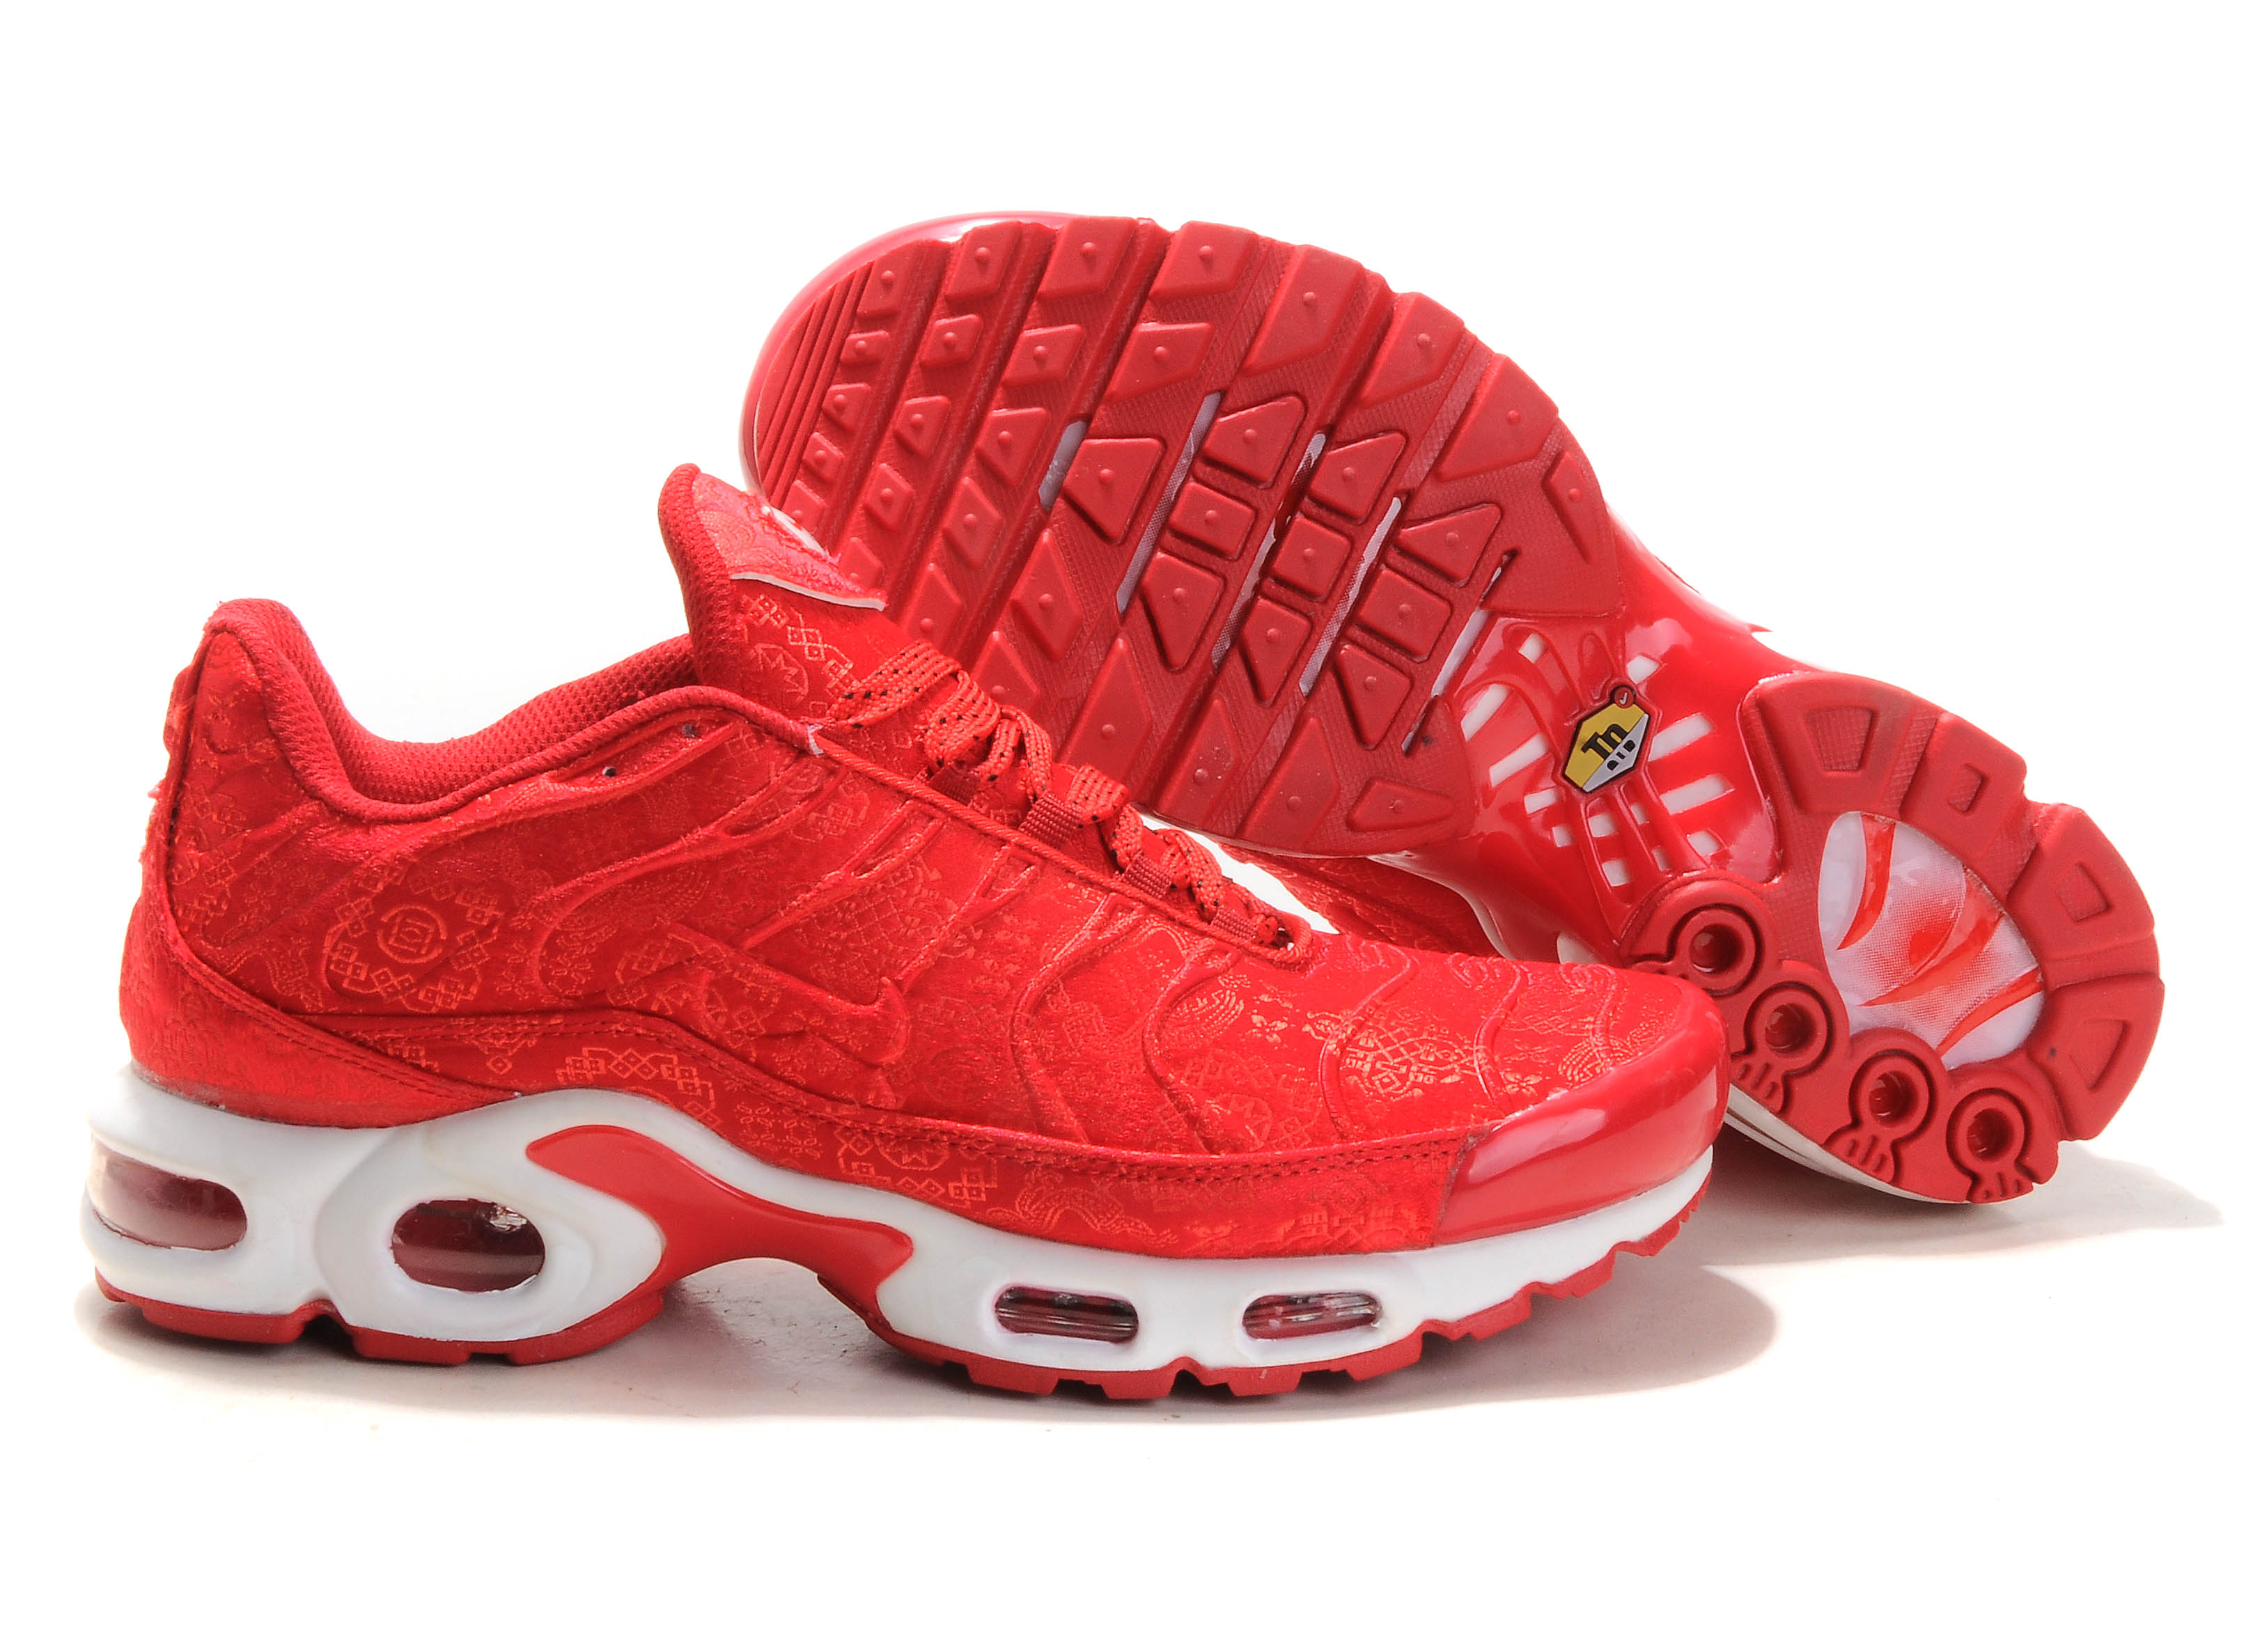 Vente Baskets Chaussures Cher Requin Pas Nike Locker Foot achat 8YaqnwC4